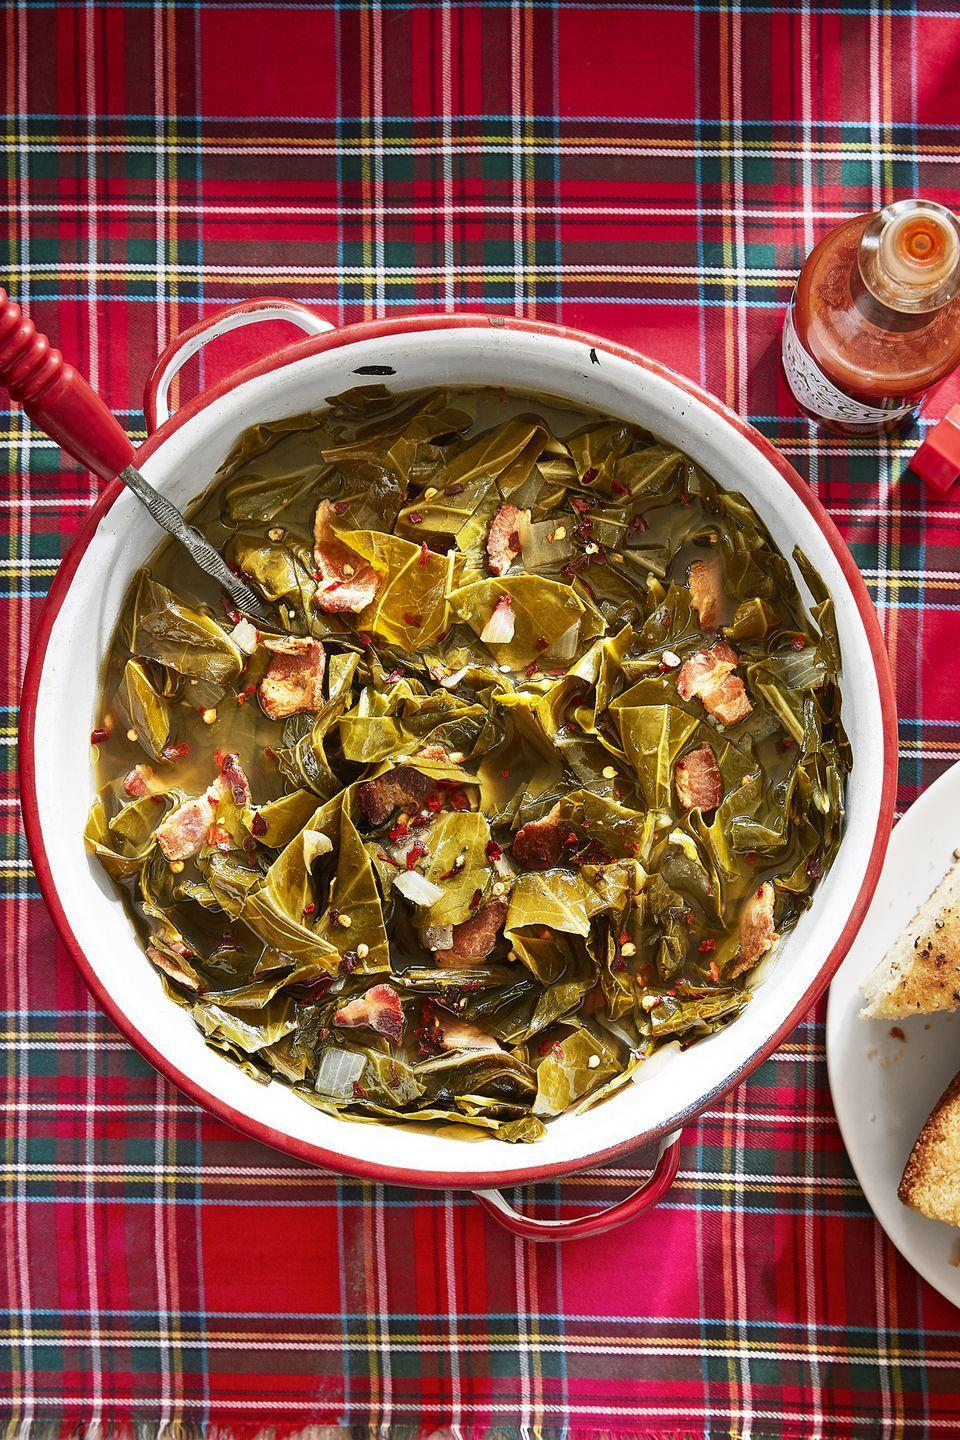 "<p><span class=""redactor-unlink"">Add some flavor to these dark, leafy veggies with garlic, onion, and loads of crispy bacon.</span></p><p><strong><a href=""https://www.countryliving.com/food-drinks/recipes/a45271/braised-greens-recipe/"" rel=""nofollow noopener"" target=""_blank"" data-ylk=""slk:Get the recipe"" class=""link rapid-noclick-resp"">Get the recipe</a>.</strong></p><p><a class=""link rapid-noclick-resp"" href=""https://go.redirectingat.com?id=74968X1596630&url=https%3A%2F%2Fwww.wayfair.com%2FVictoria--Victoria-12-Skillet-SKL212-L785-K%7EBCTO1019.html&sref=https%3A%2F%2Fwww.countryliving.com%2Ffood-drinks%2Fg896%2Fthanksgiving-side-dishes%2F"" rel=""nofollow noopener"" target=""_blank"" data-ylk=""slk:SHOP SKILLETS"">SHOP SKILLETS</a></p>"